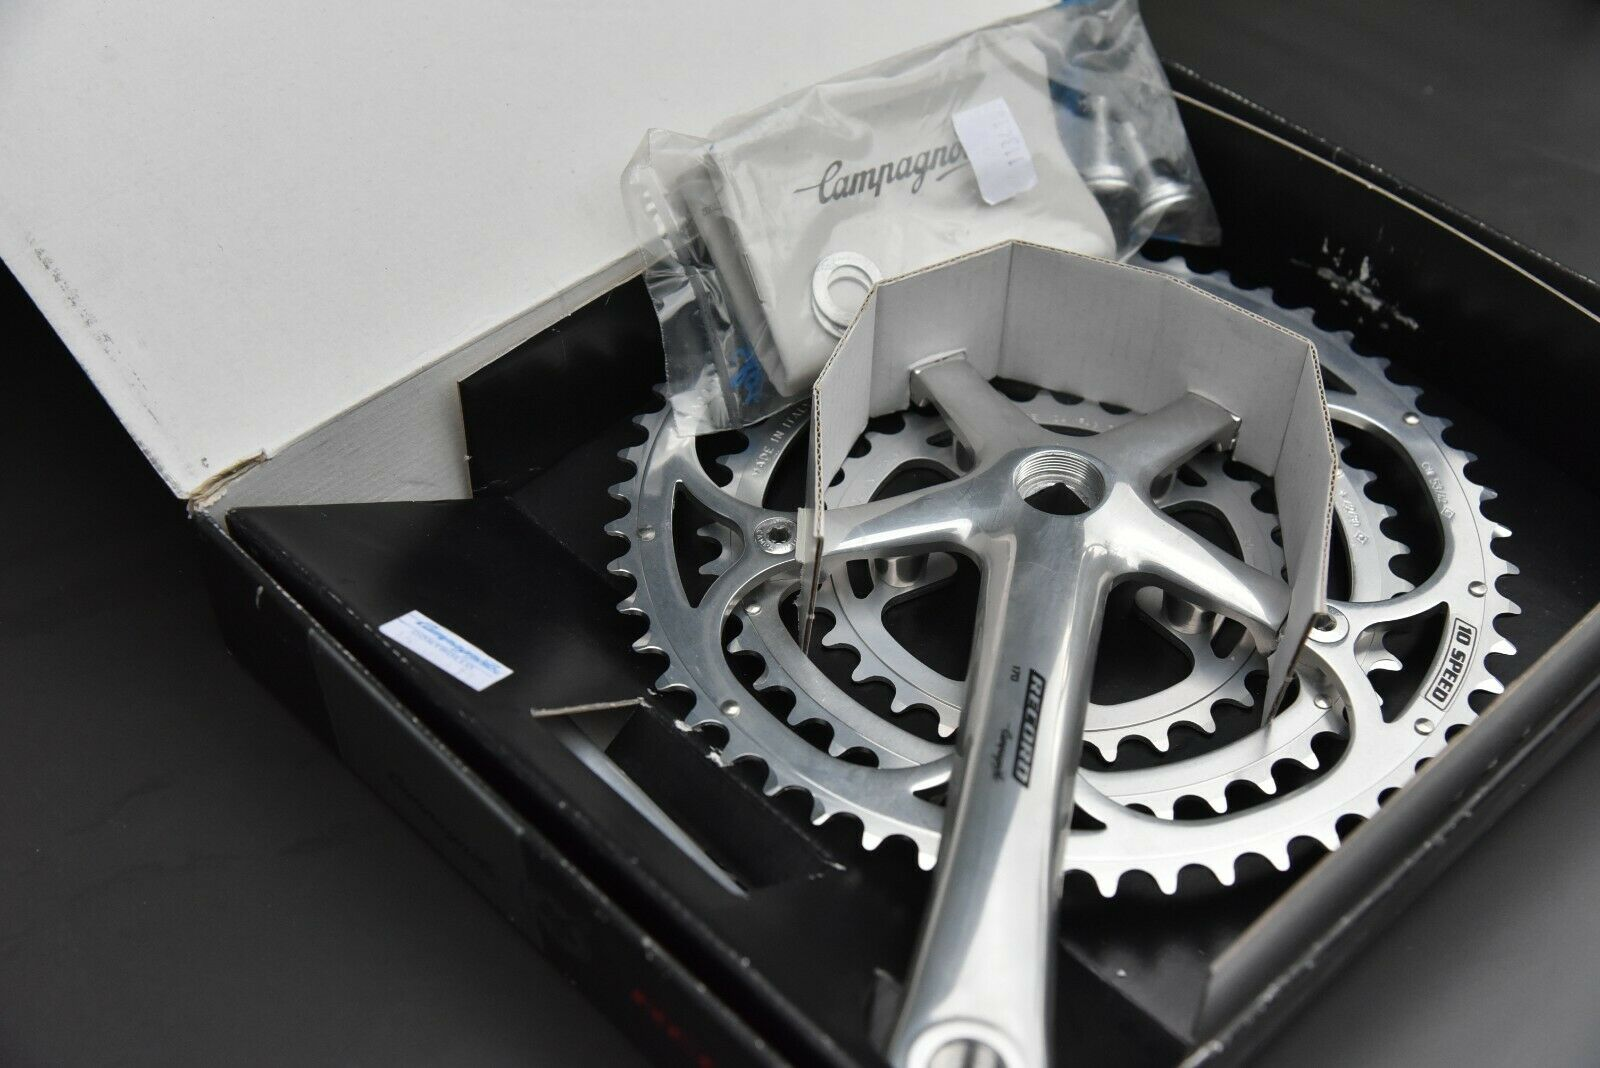 NOS Campagnolo 10 Speed Ketenset Cranks 170mm Boxed Triple 53 42 30